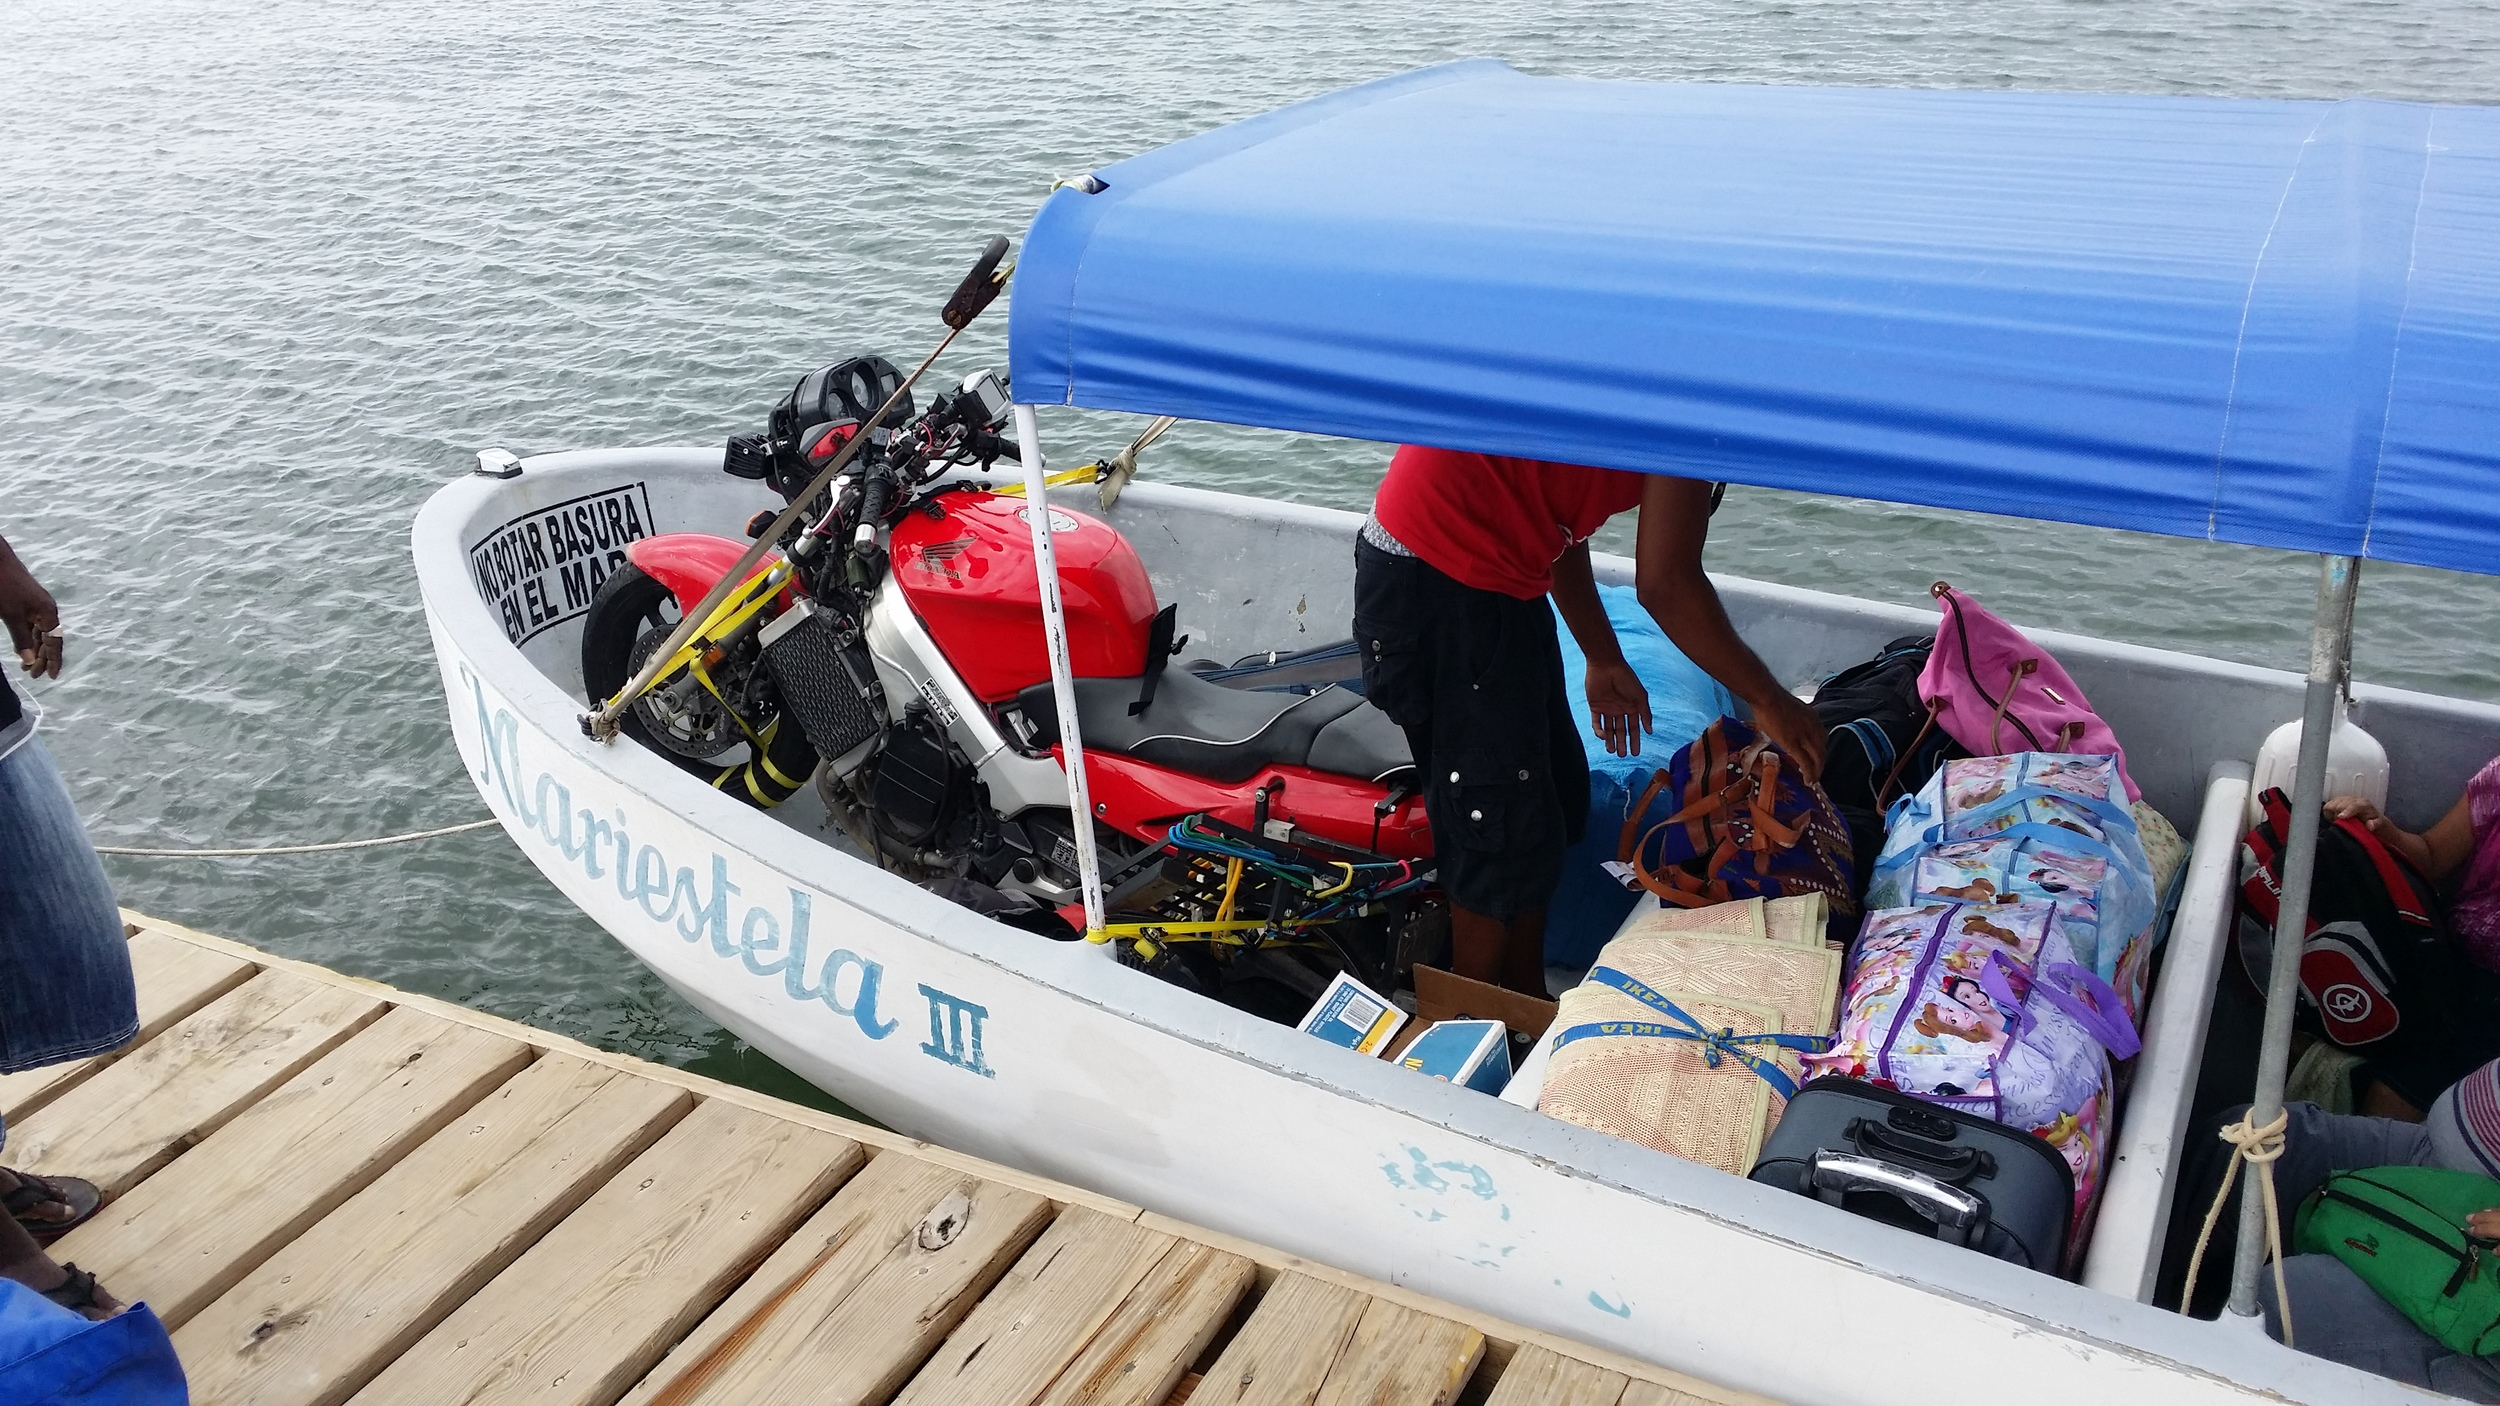 Paul's bike on the way from Belize to Guatemala...thanks for providing the photo, Paul.